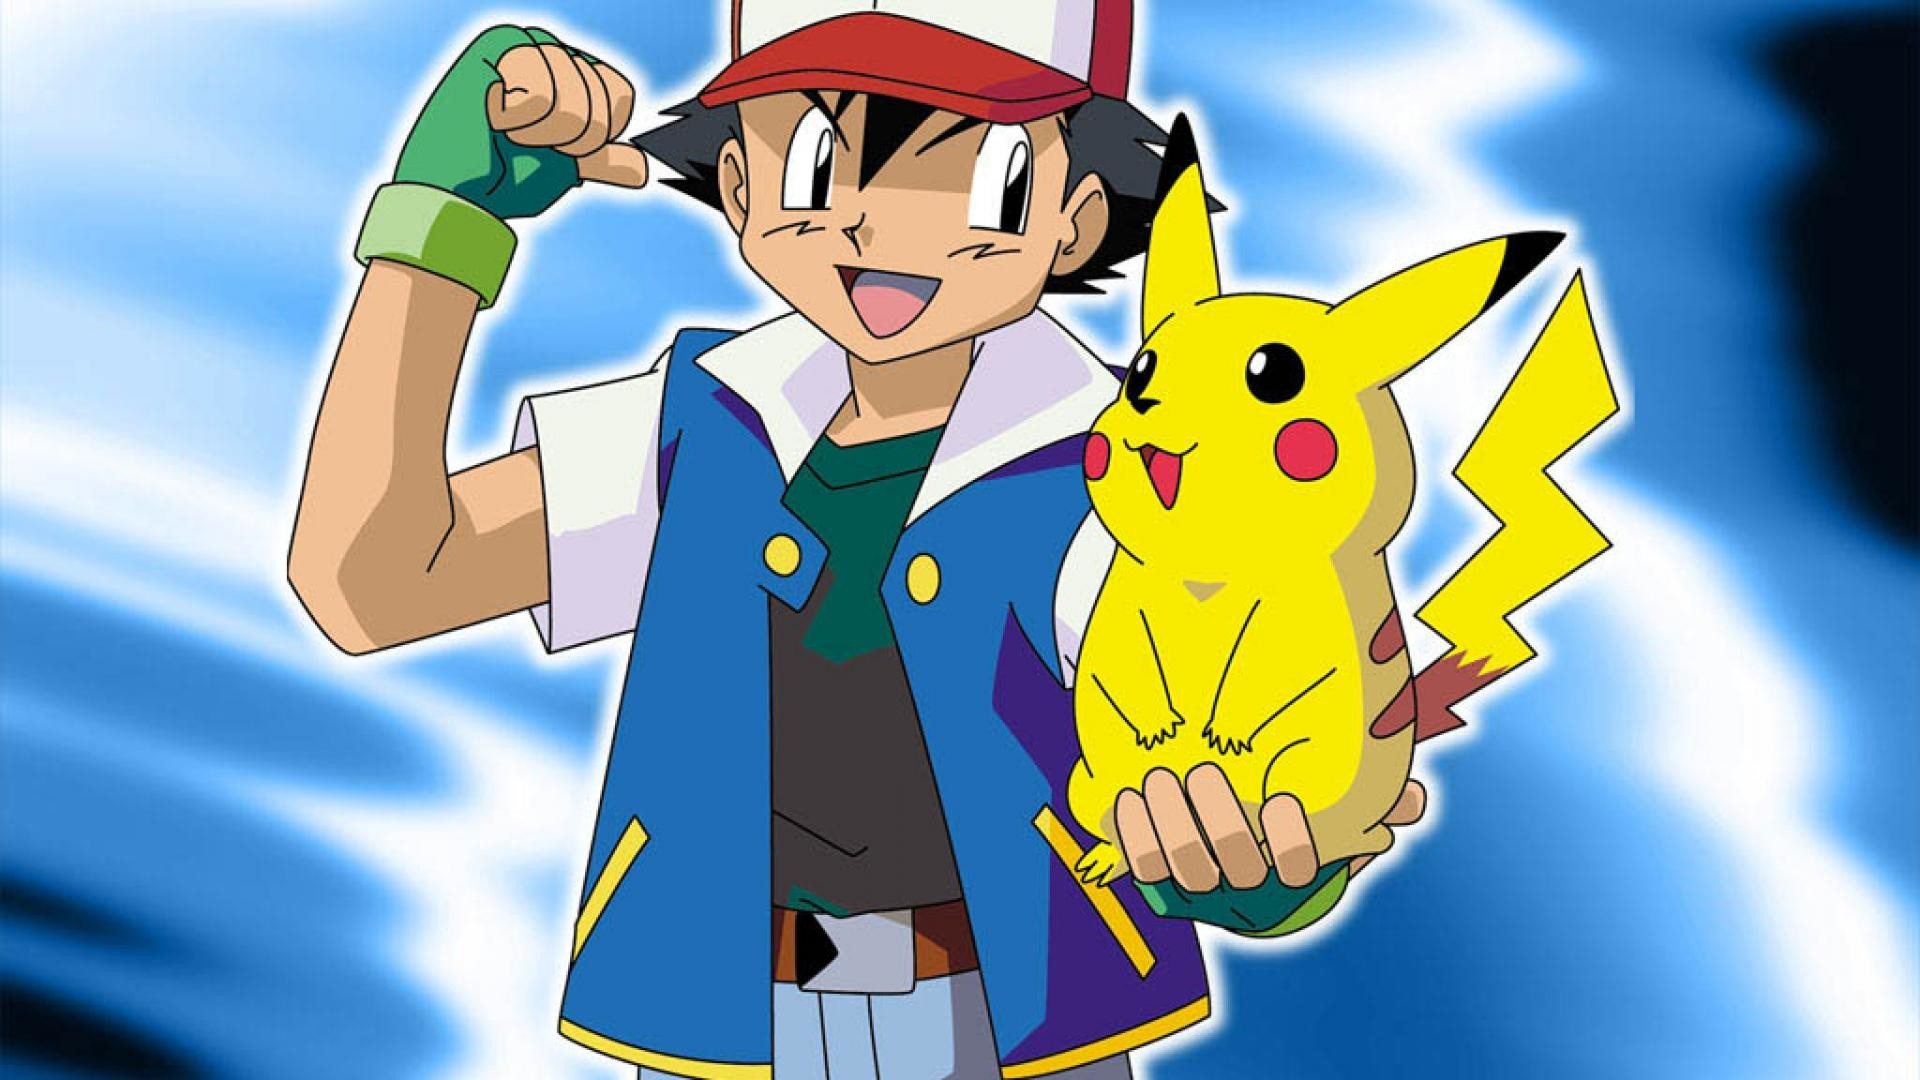 Download Pikachu wallpapers to your cell phone cartoon pikachu